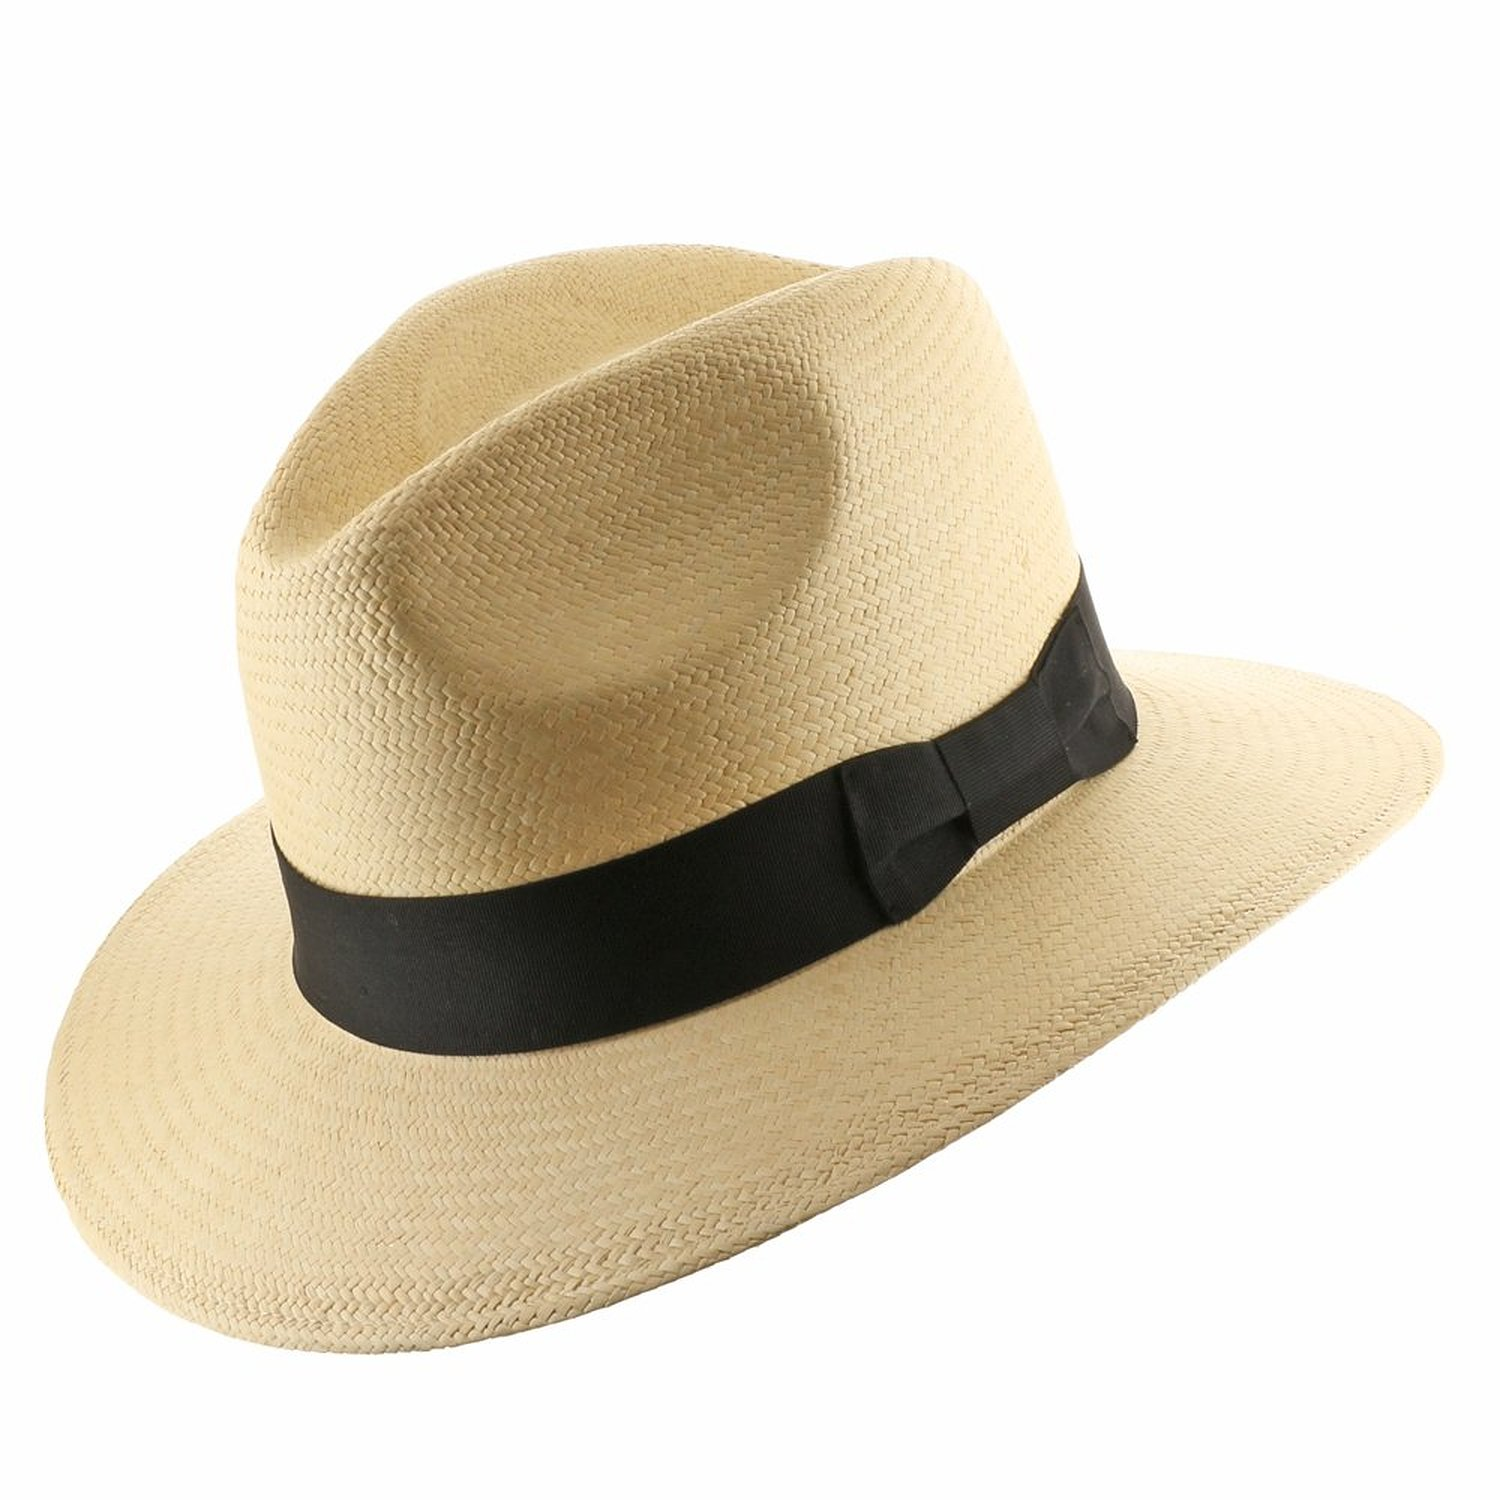 panama hats 75 results found in all categories: leather hat band 12 - brown- men ladies sun panama hat fedora replacement strap hat band 17 - black- men ladies sun panama hat fedora .